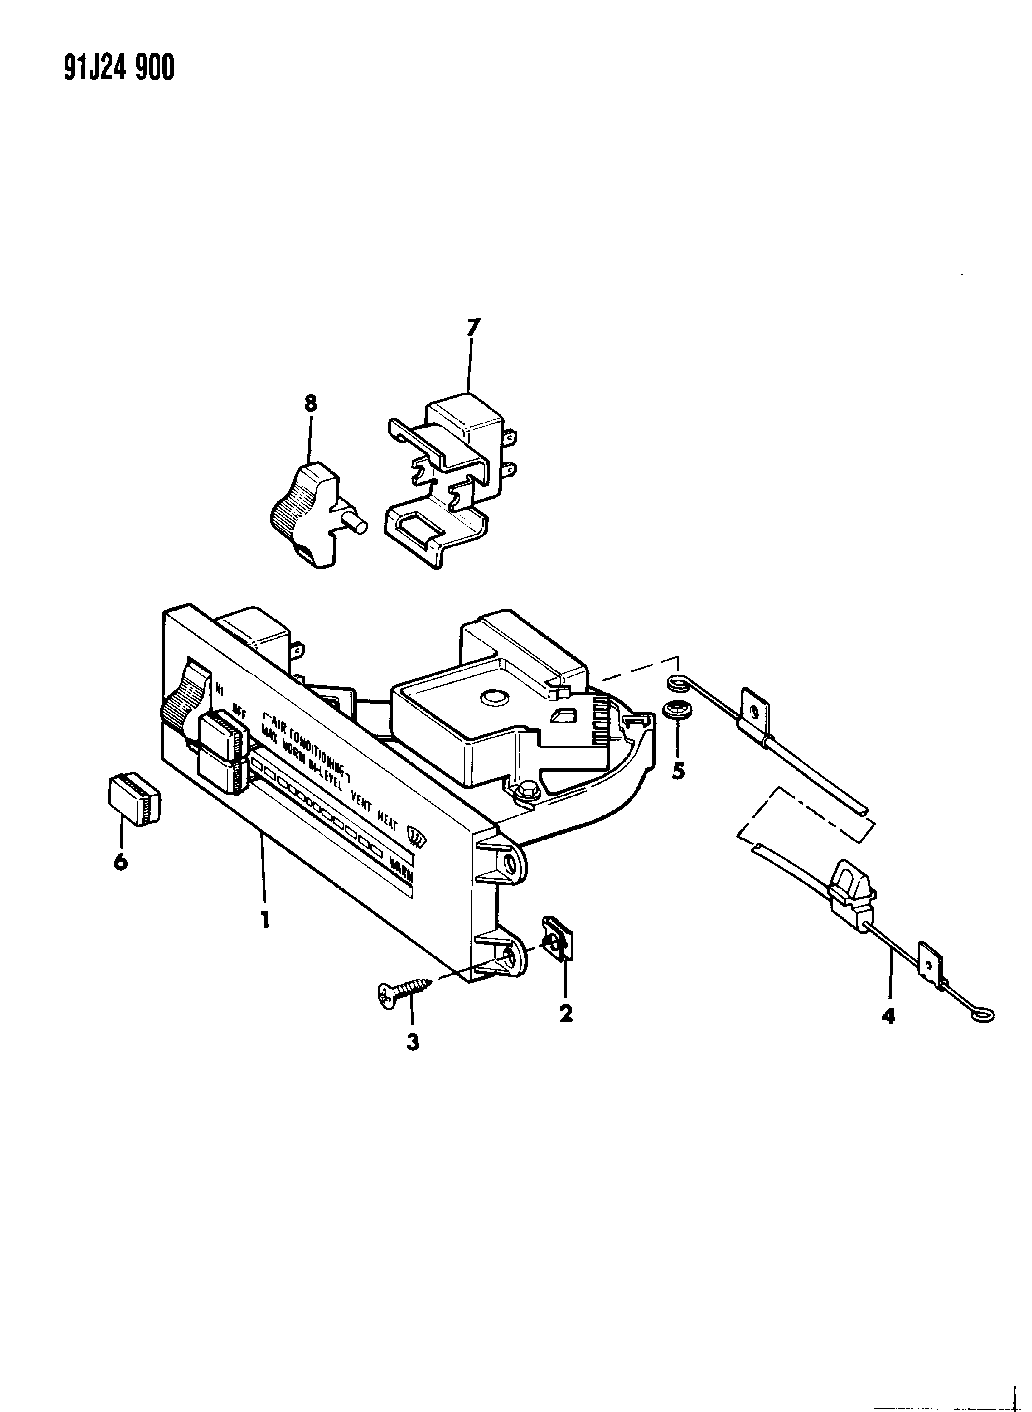 1992 Jeep Cherokee Controls, Heater And Air Conditioning